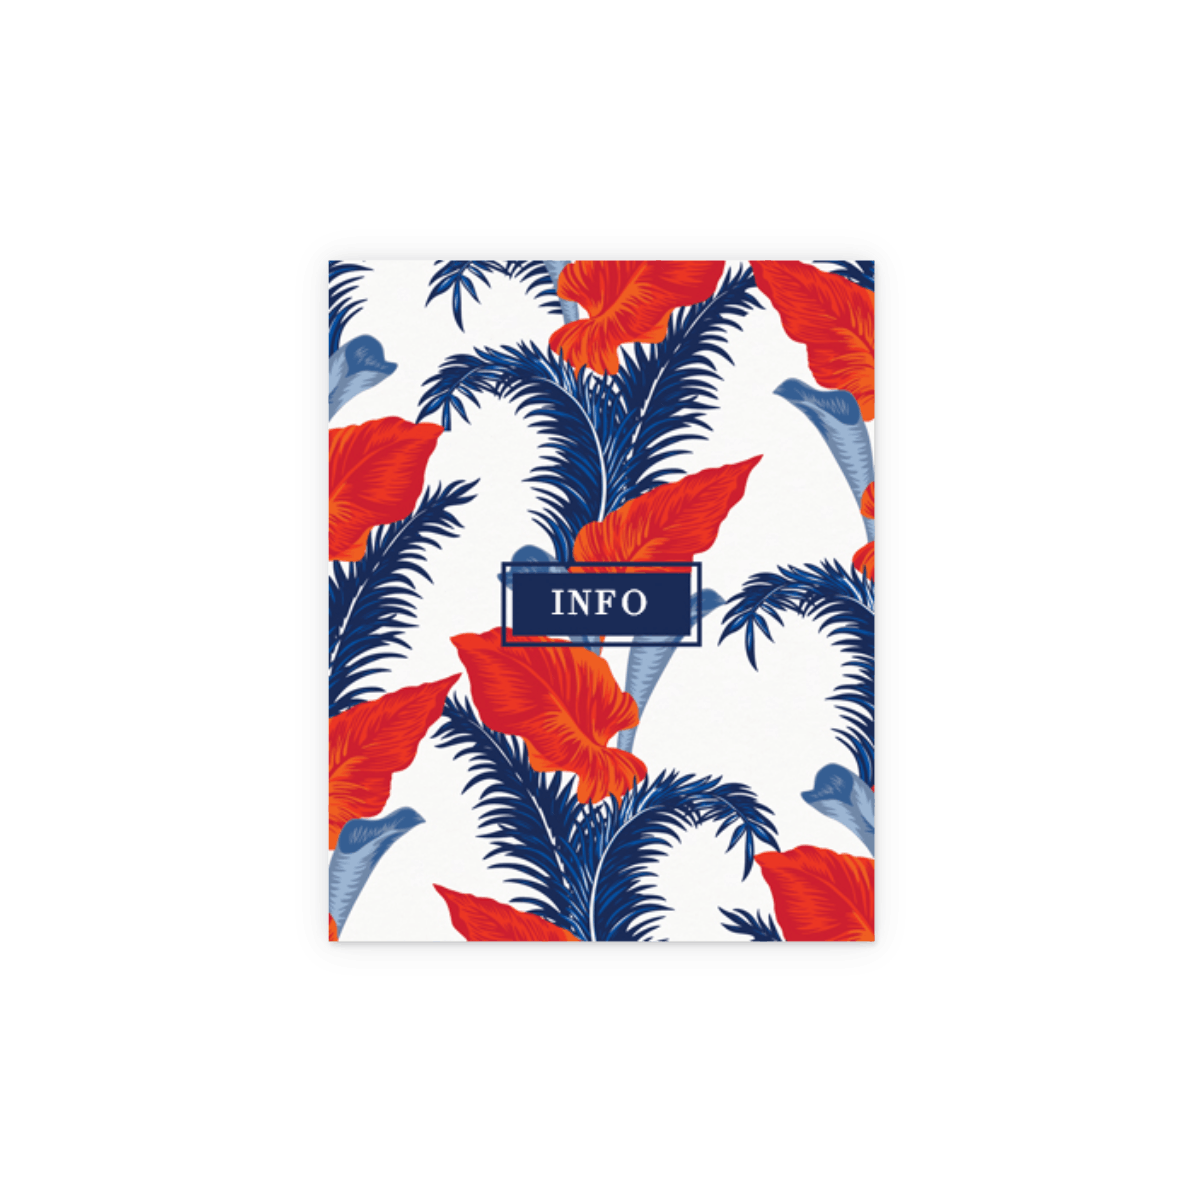 Https%3a%2f%2fwww.papier.com%2fproduct image%2f39603%2f9%2fred blue palms 9767 infokarte ruckseite 1528798553.png?ixlib=rb 1.1